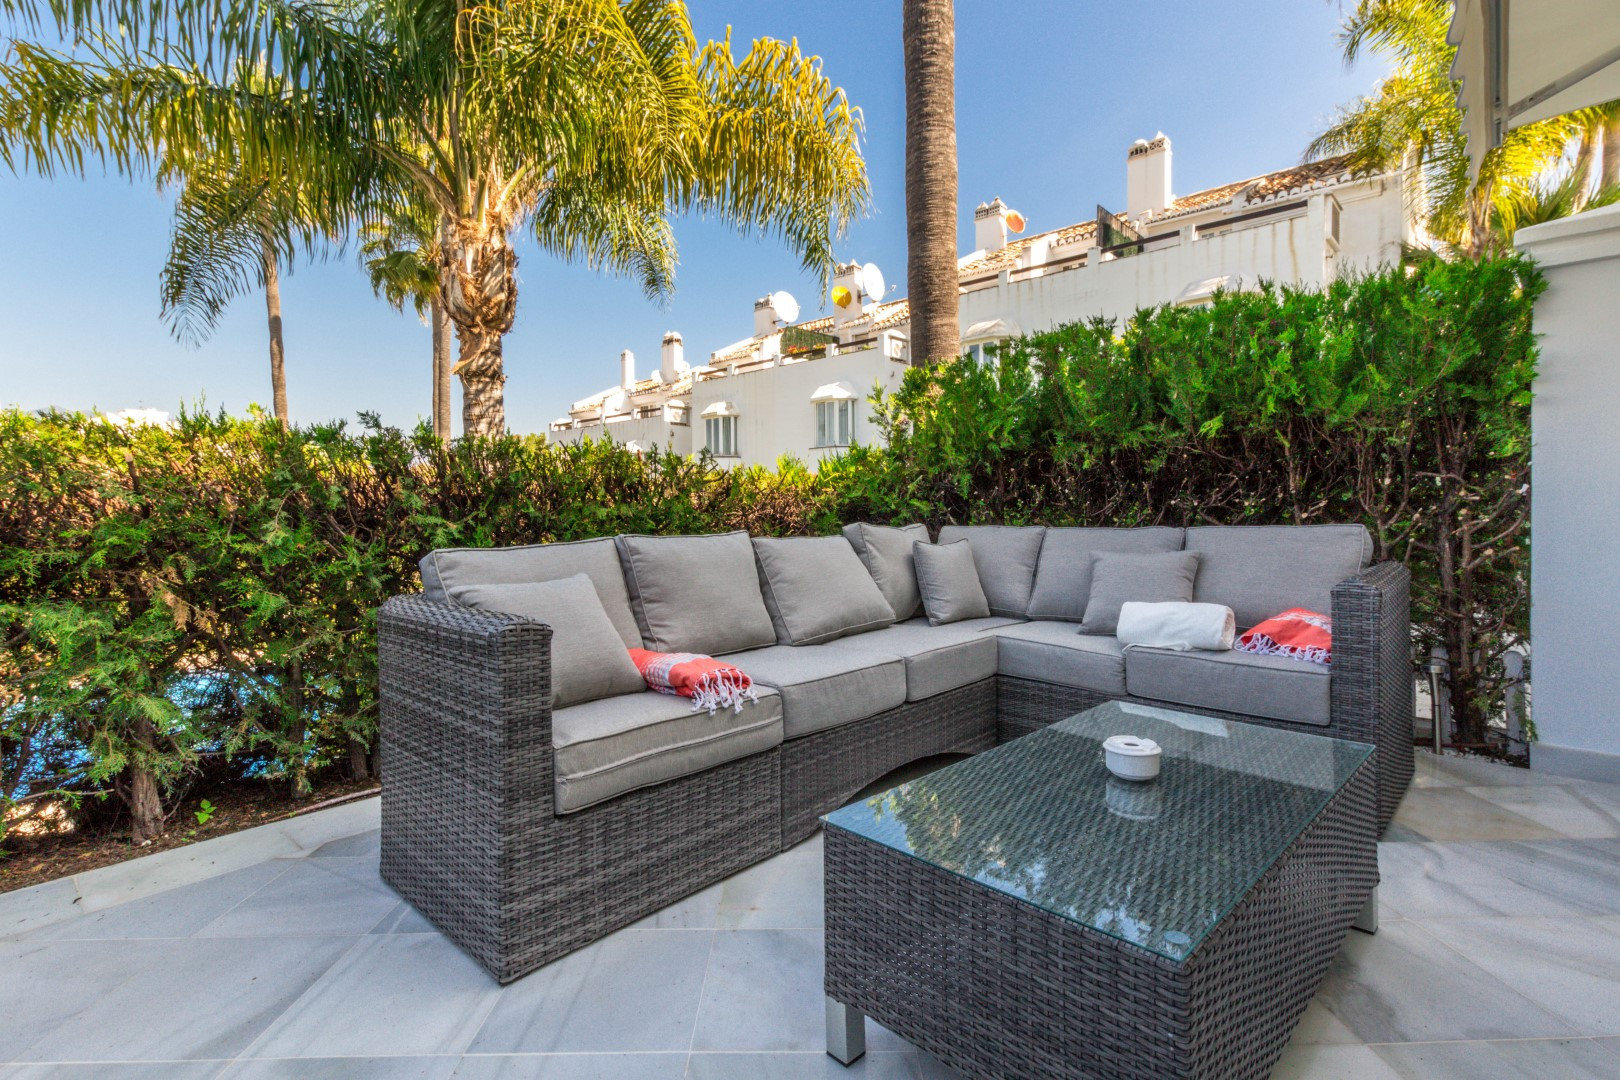 Townhouse for rent in Marbella, Arco Iris